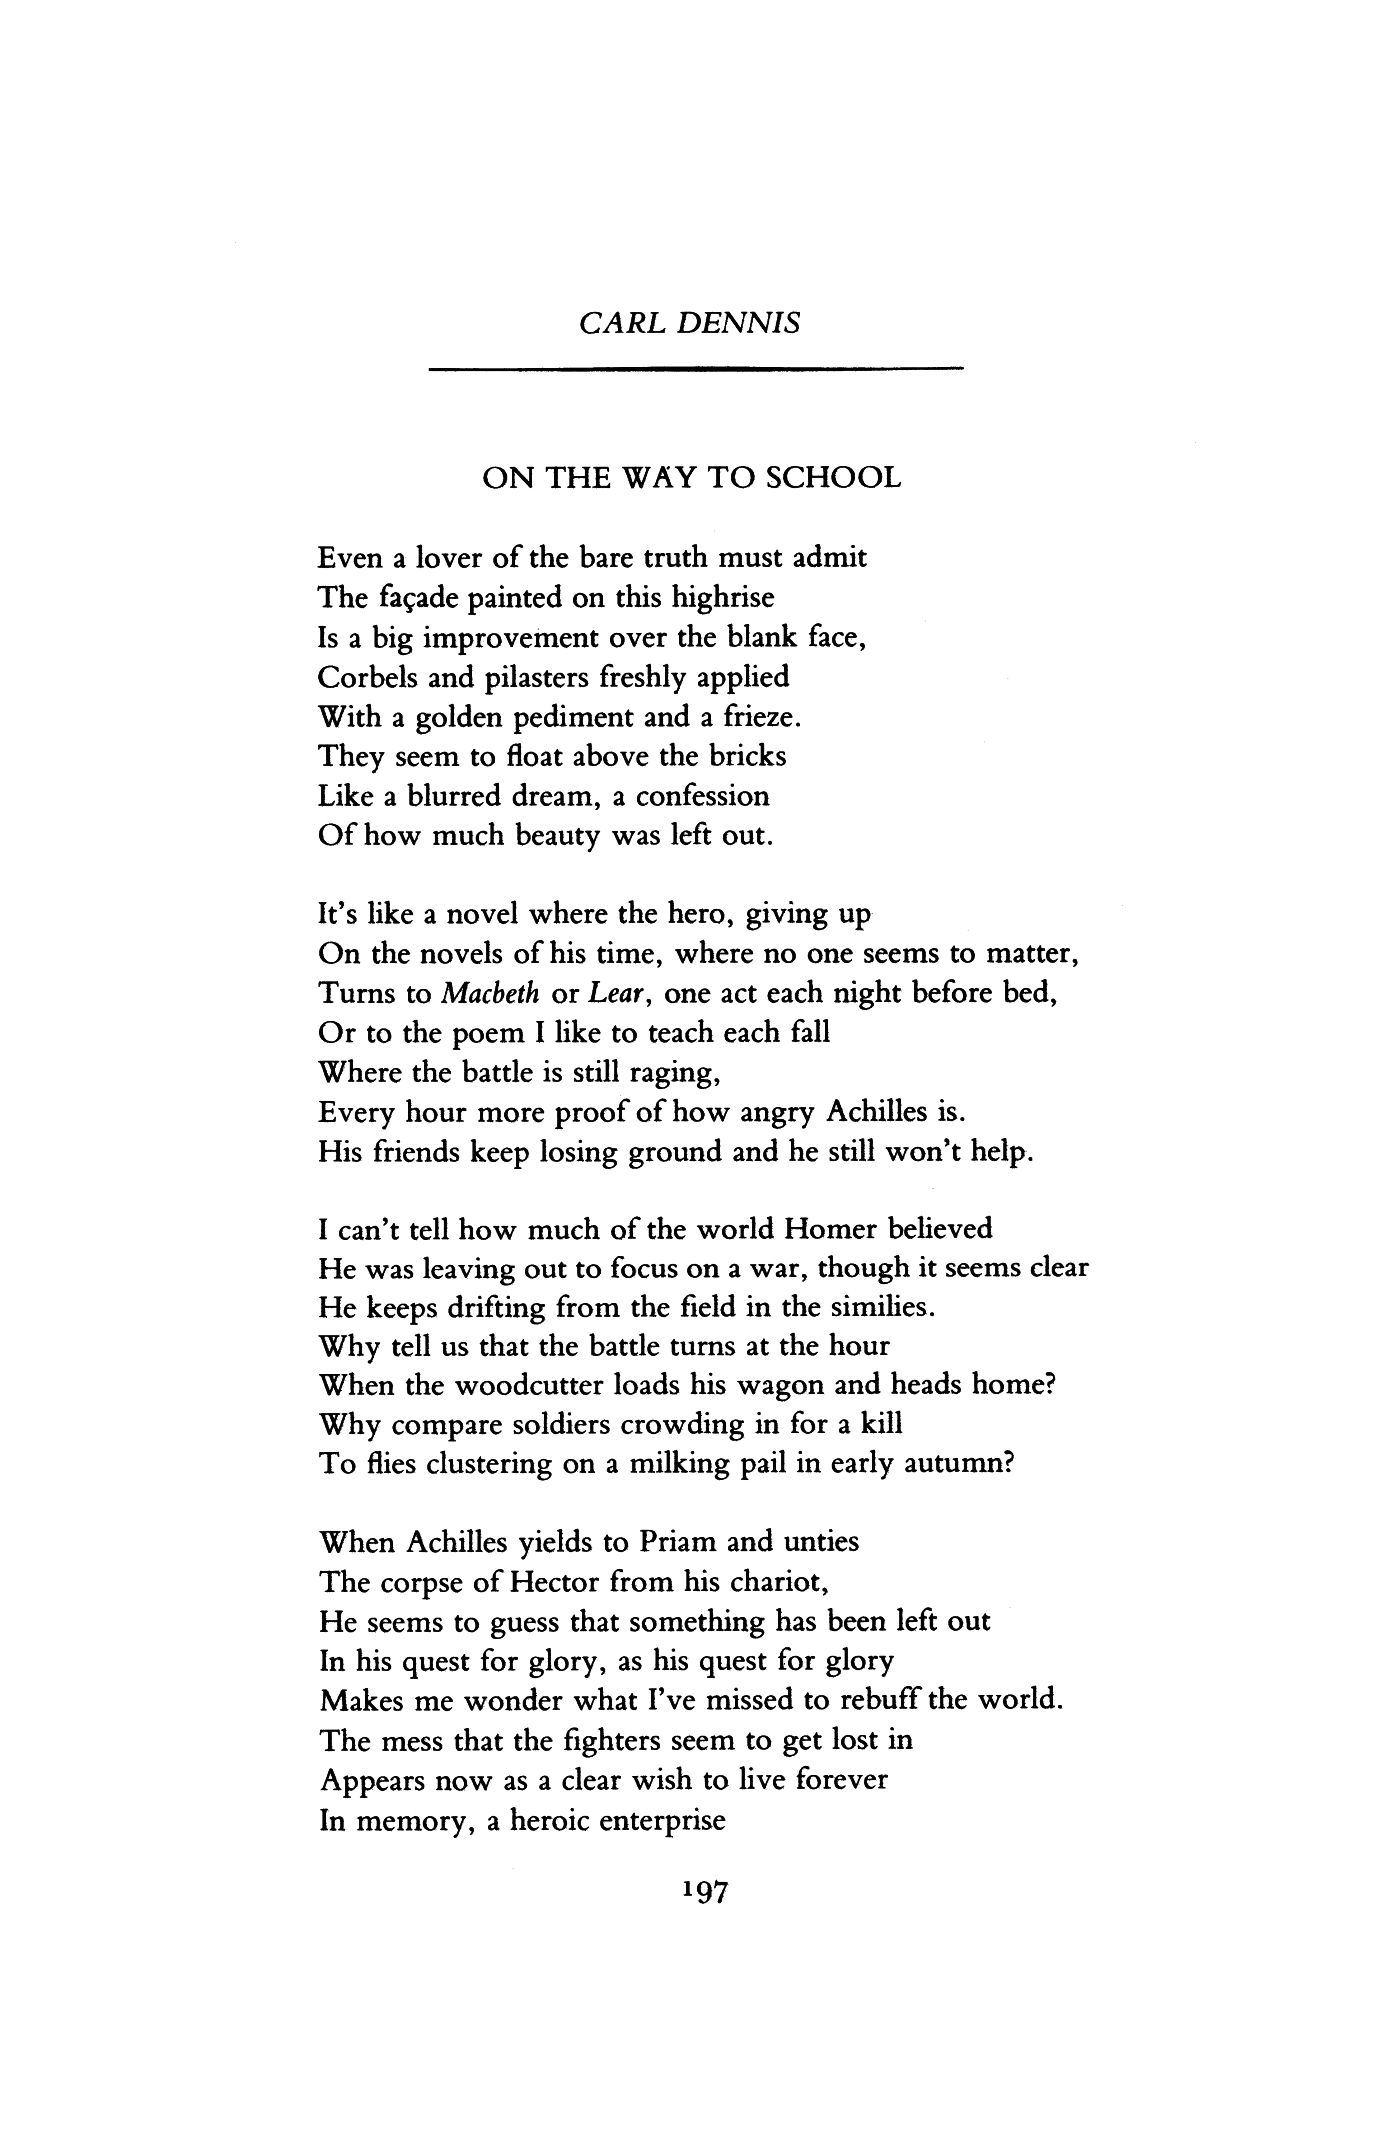 On the Way to School by Carl Dennis | Poetry Magazine